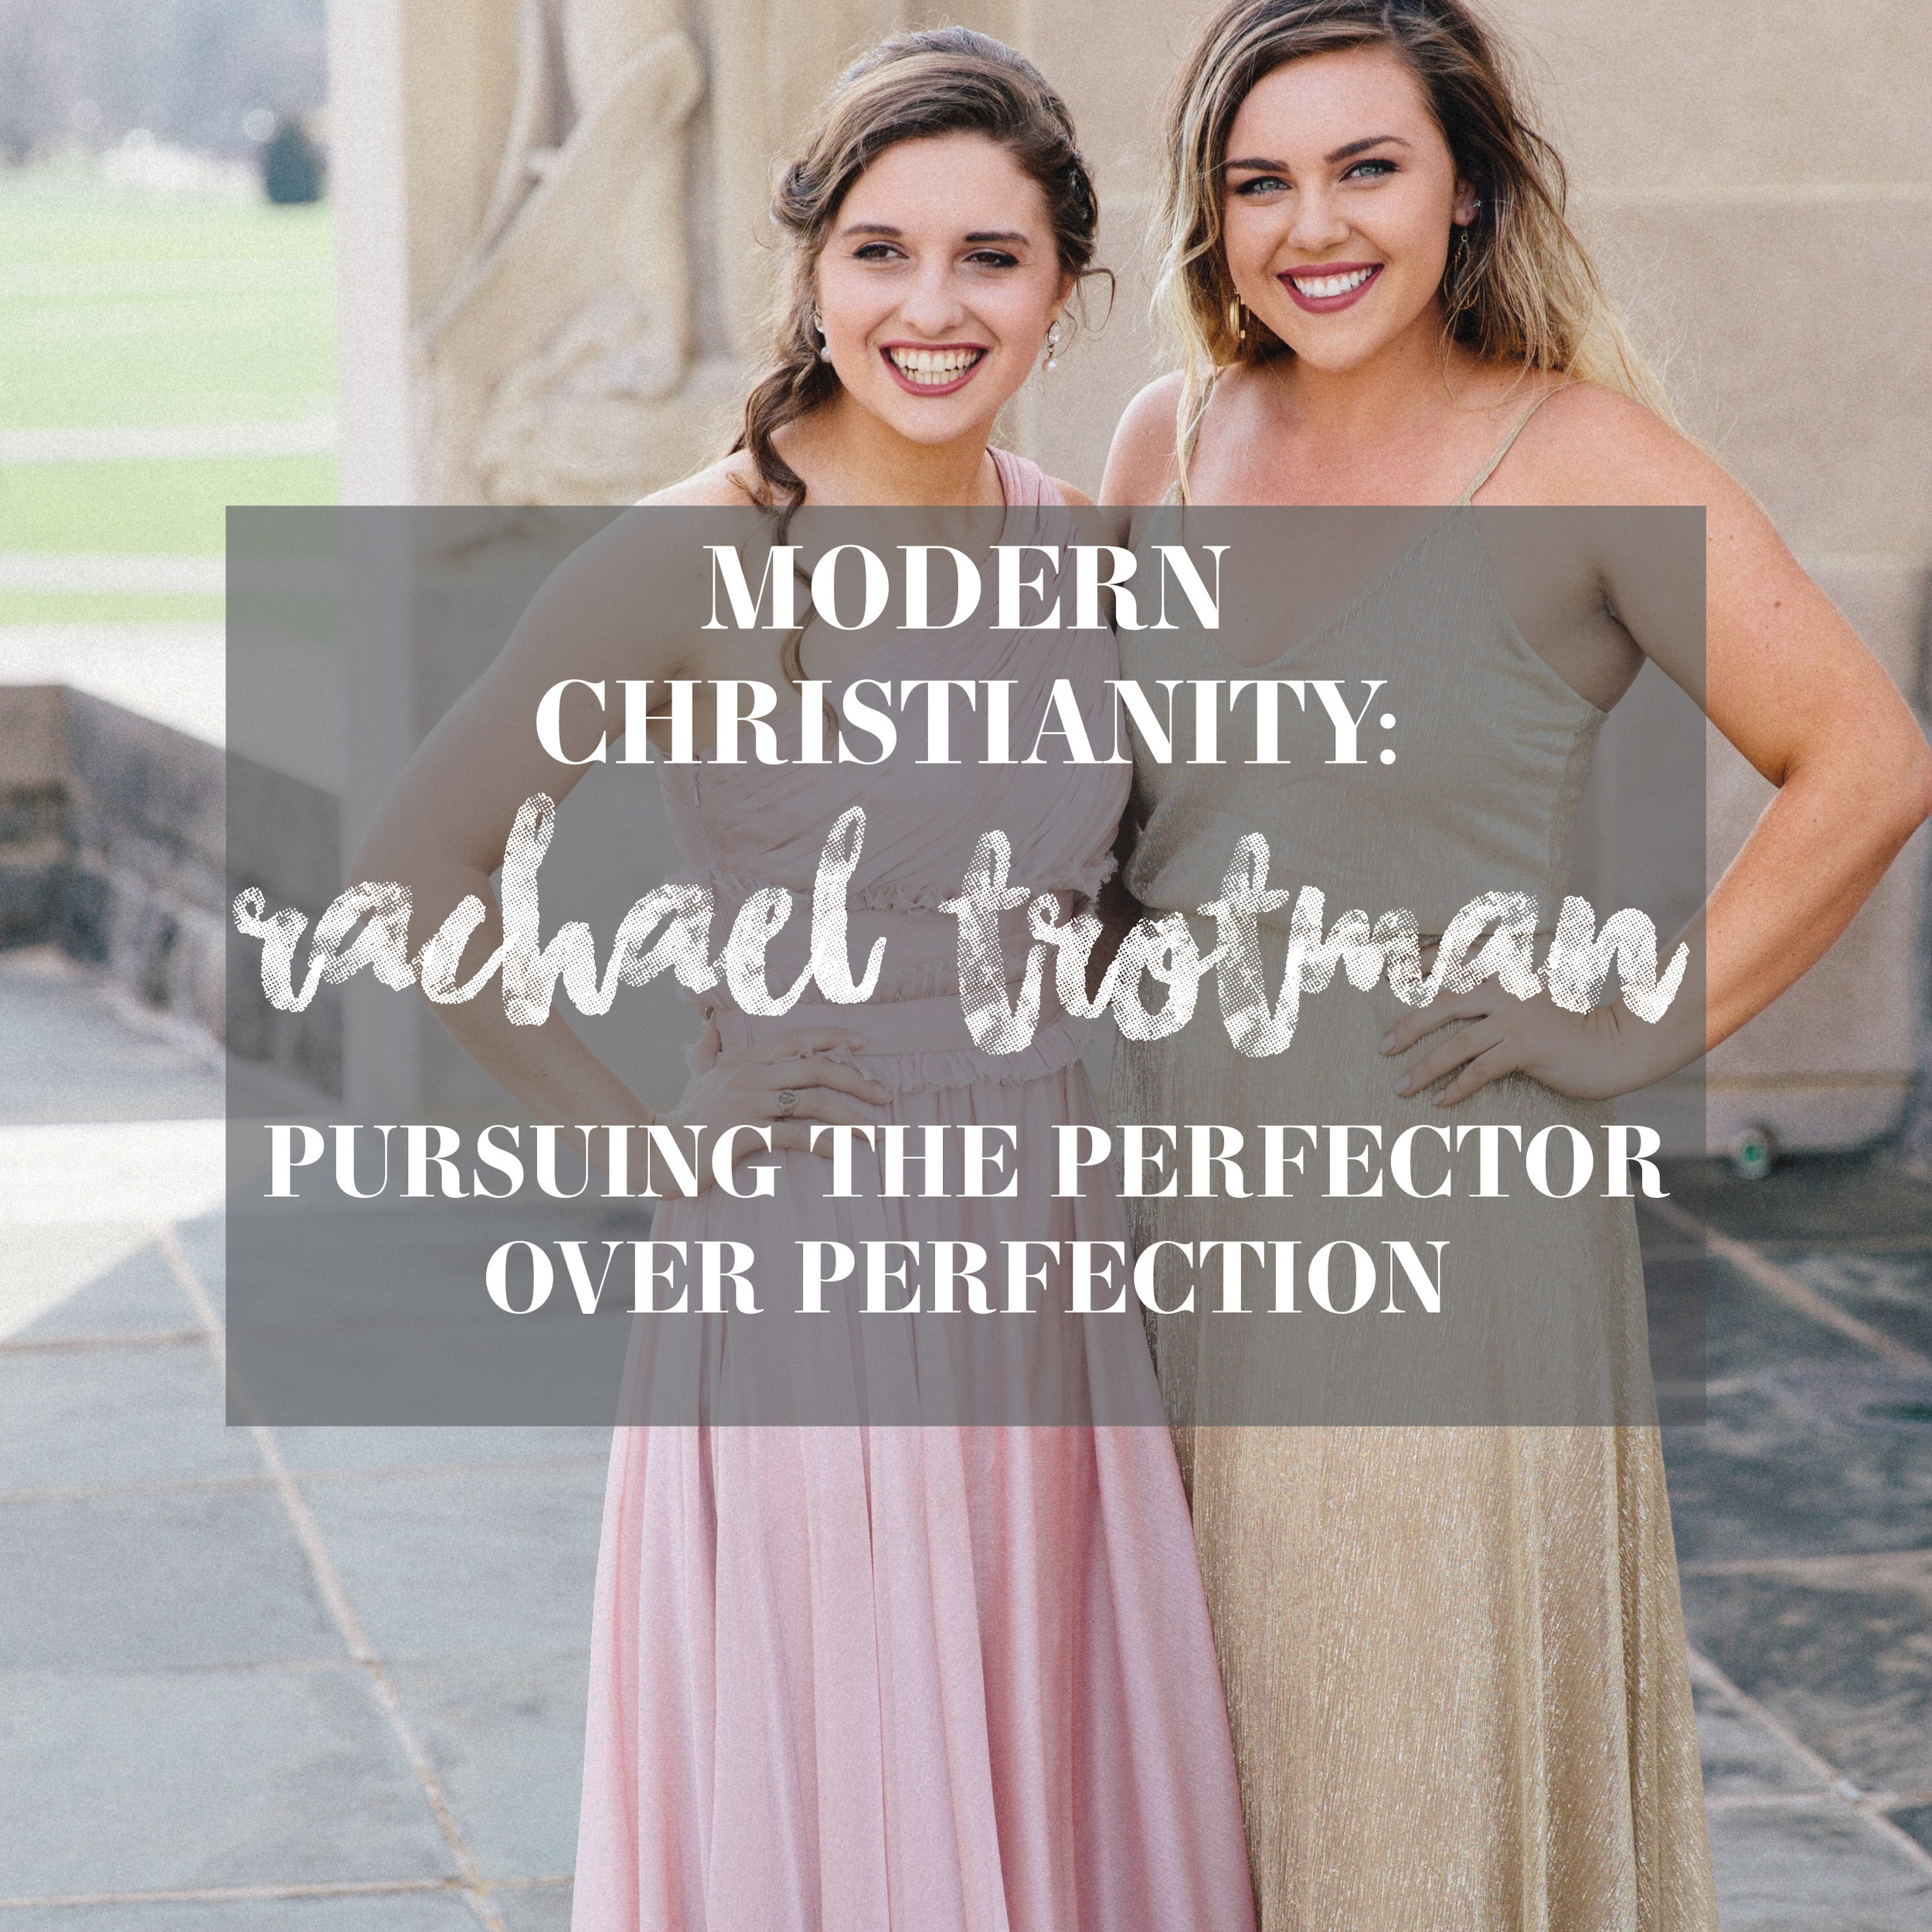 Pursuing the Perfecter over Perfection